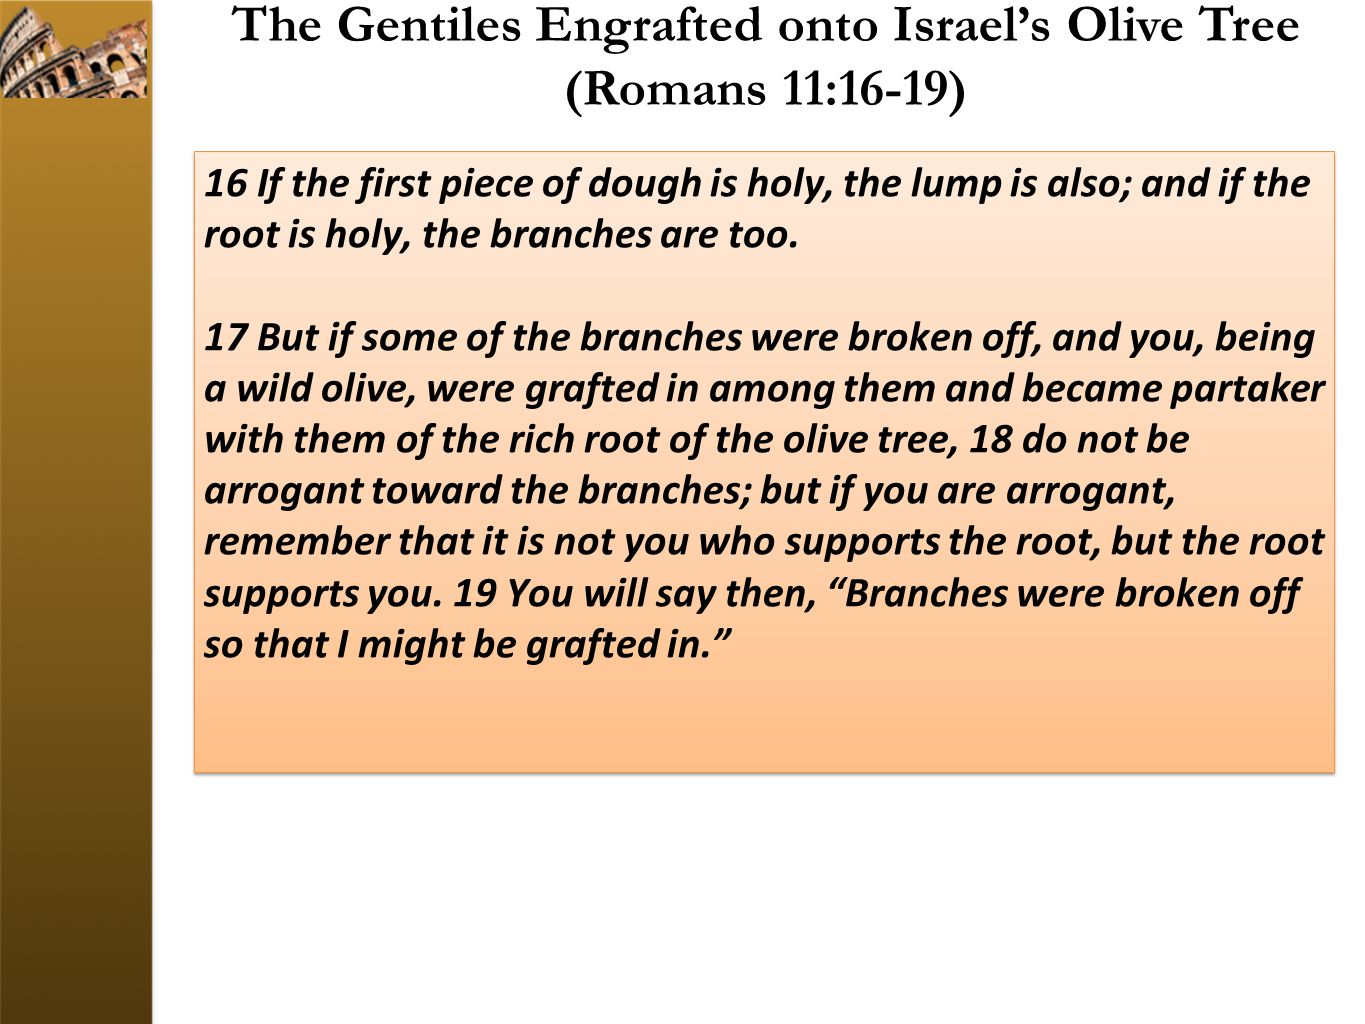 The Gentiles Engrafted onto Israel's Olive Tree (Romans 11:16-19)